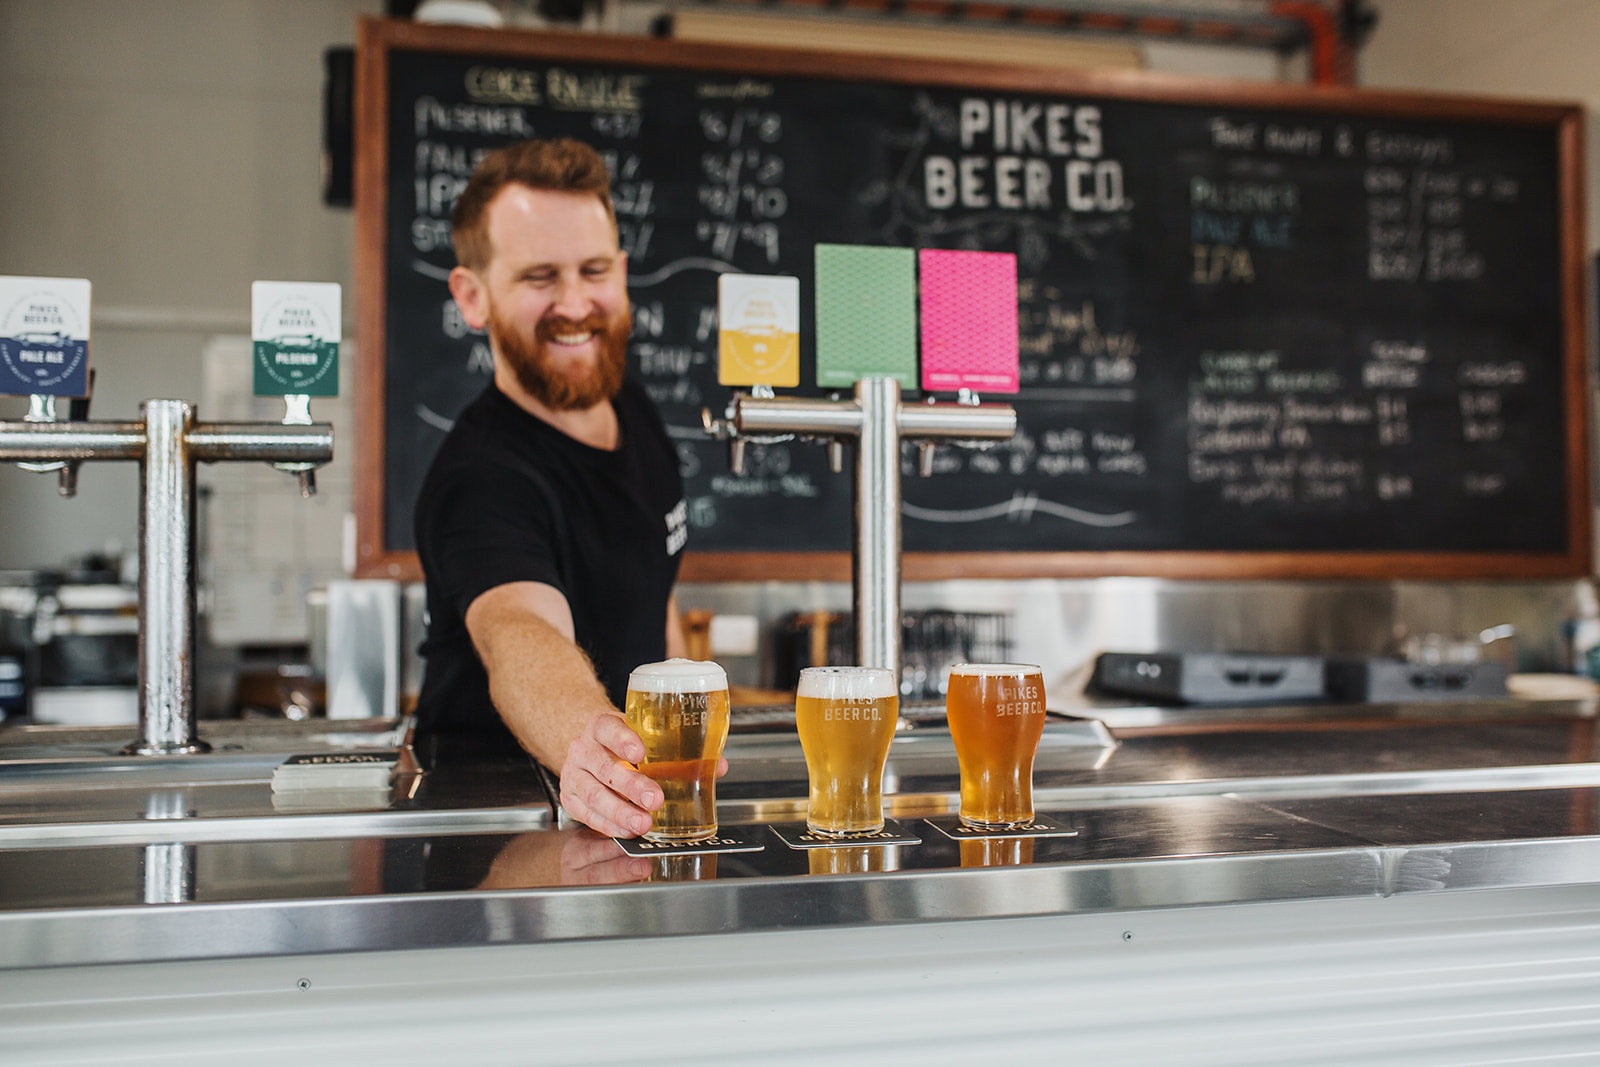 Alister Pike - Pikes Beer Co. Tap Room